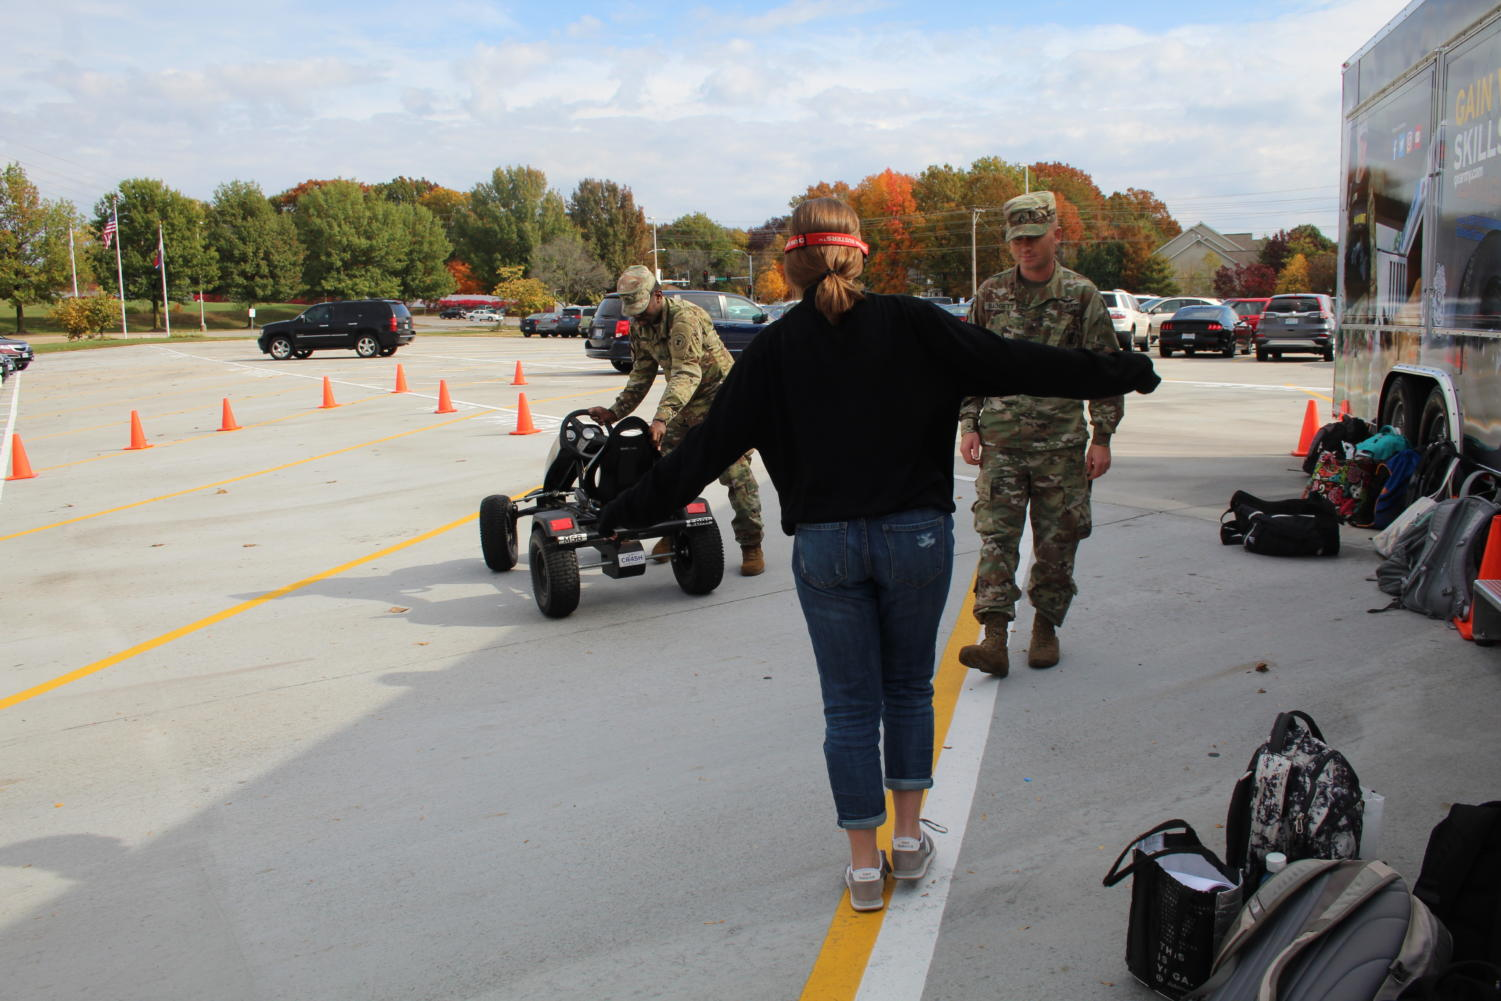 Jilian Bunderson, junior, attempts to walk in a straight line while wearing impairment goggles. She participated in the impaired driving simulations brought to MHS by US Army Staff Sergeants.